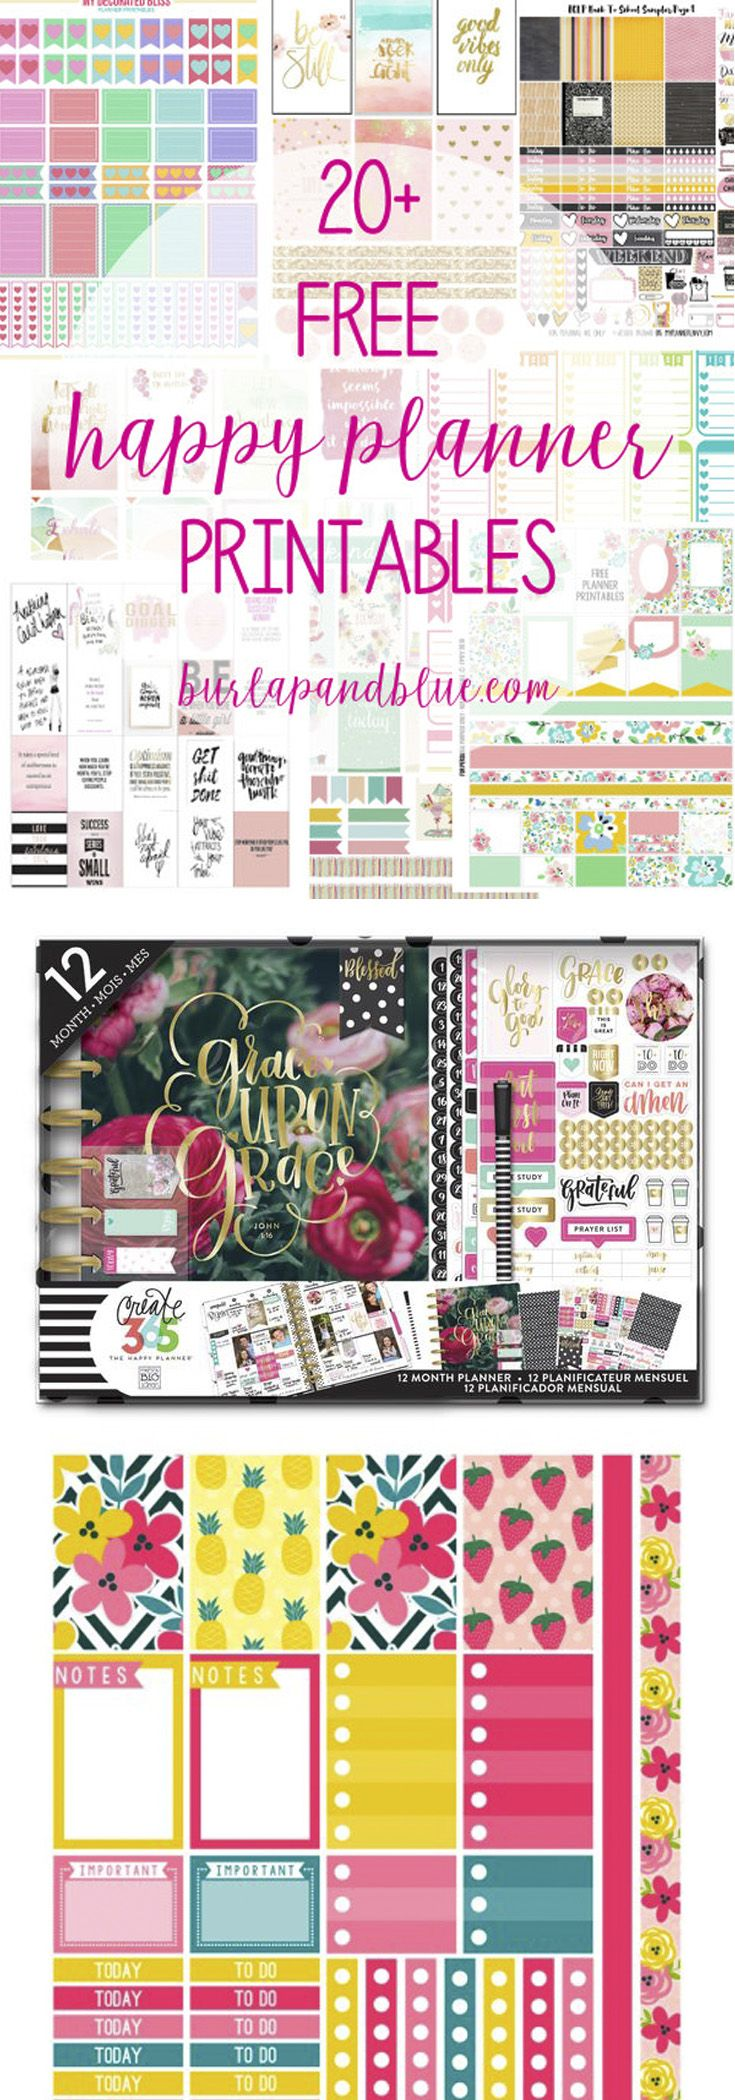 Over 20 free Happy Planner printables! The Happy Planner is the perfect way to get organized in the New Year!